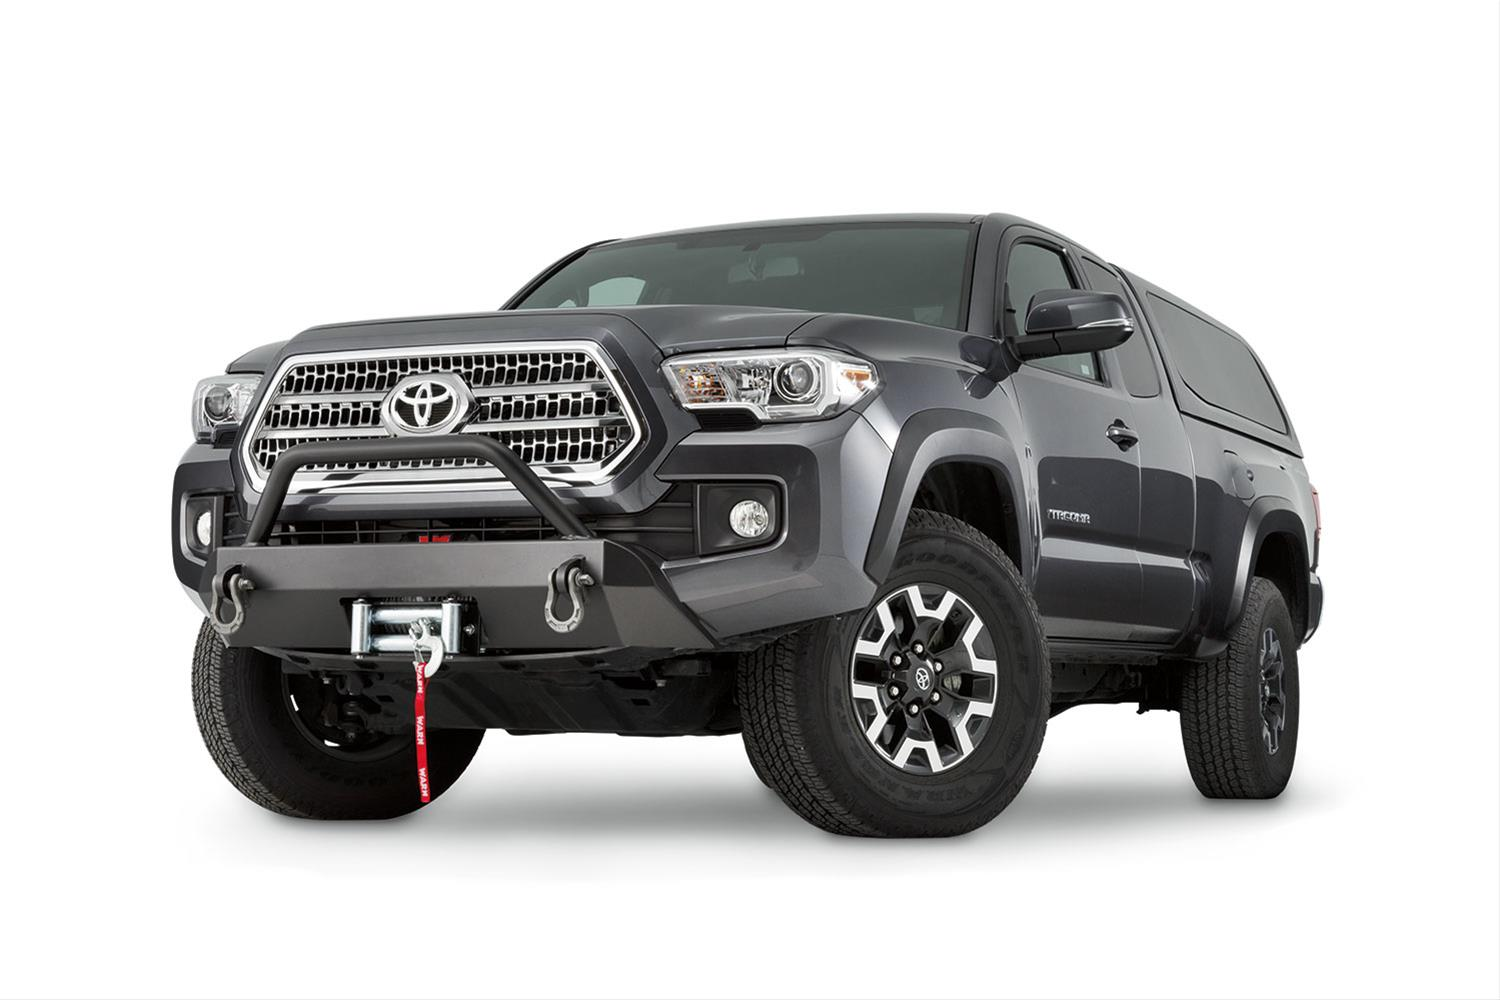 hight resolution of warn semi hidden kit winch mounting systems 100044 free shipping on orders over 99 at summit racing